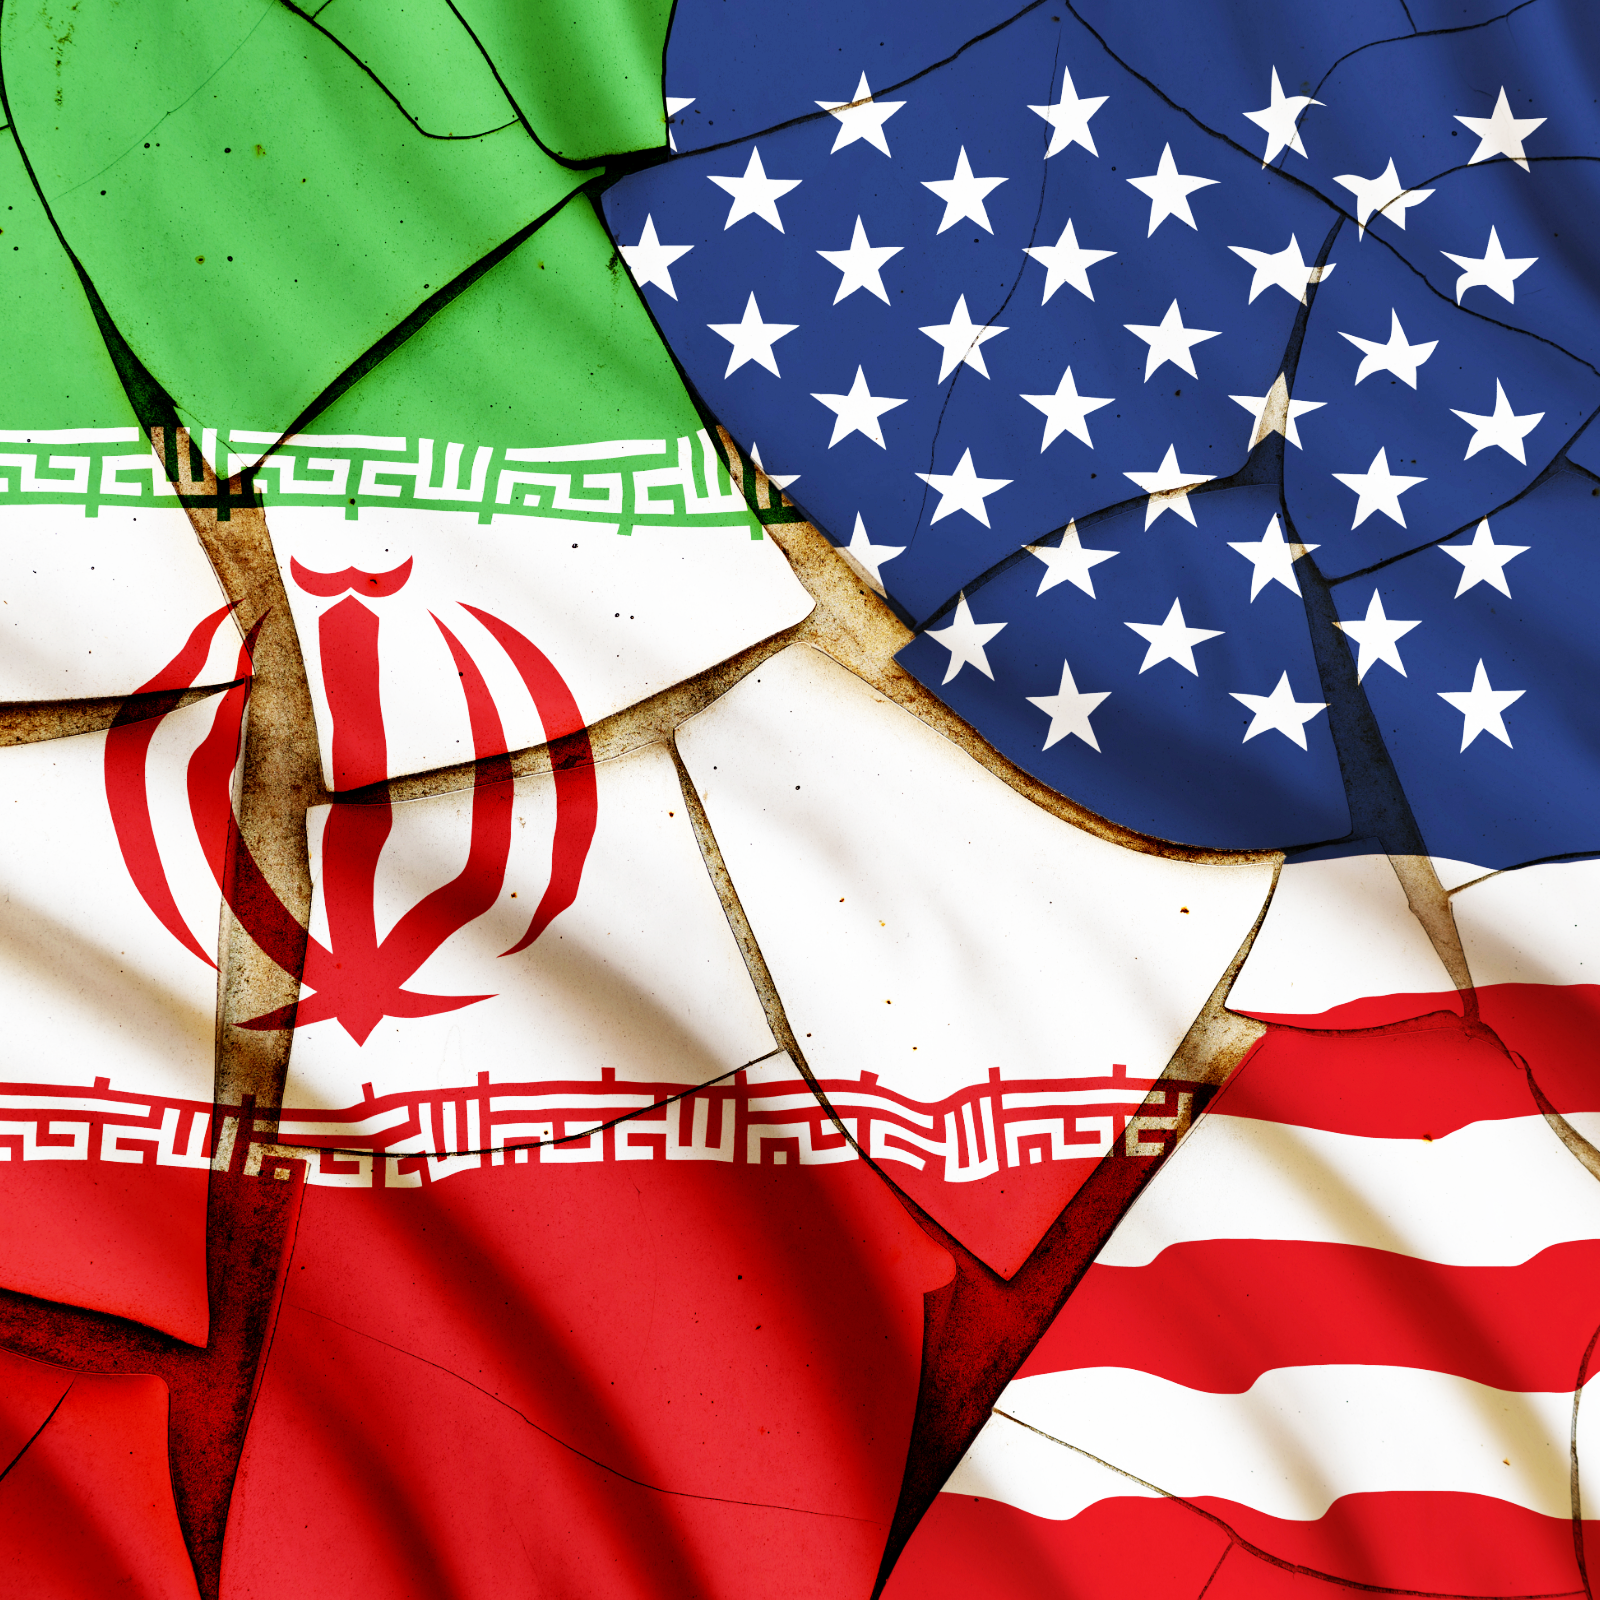 Over 500 BTC Belonging to Iranians Seized by US Government: Report